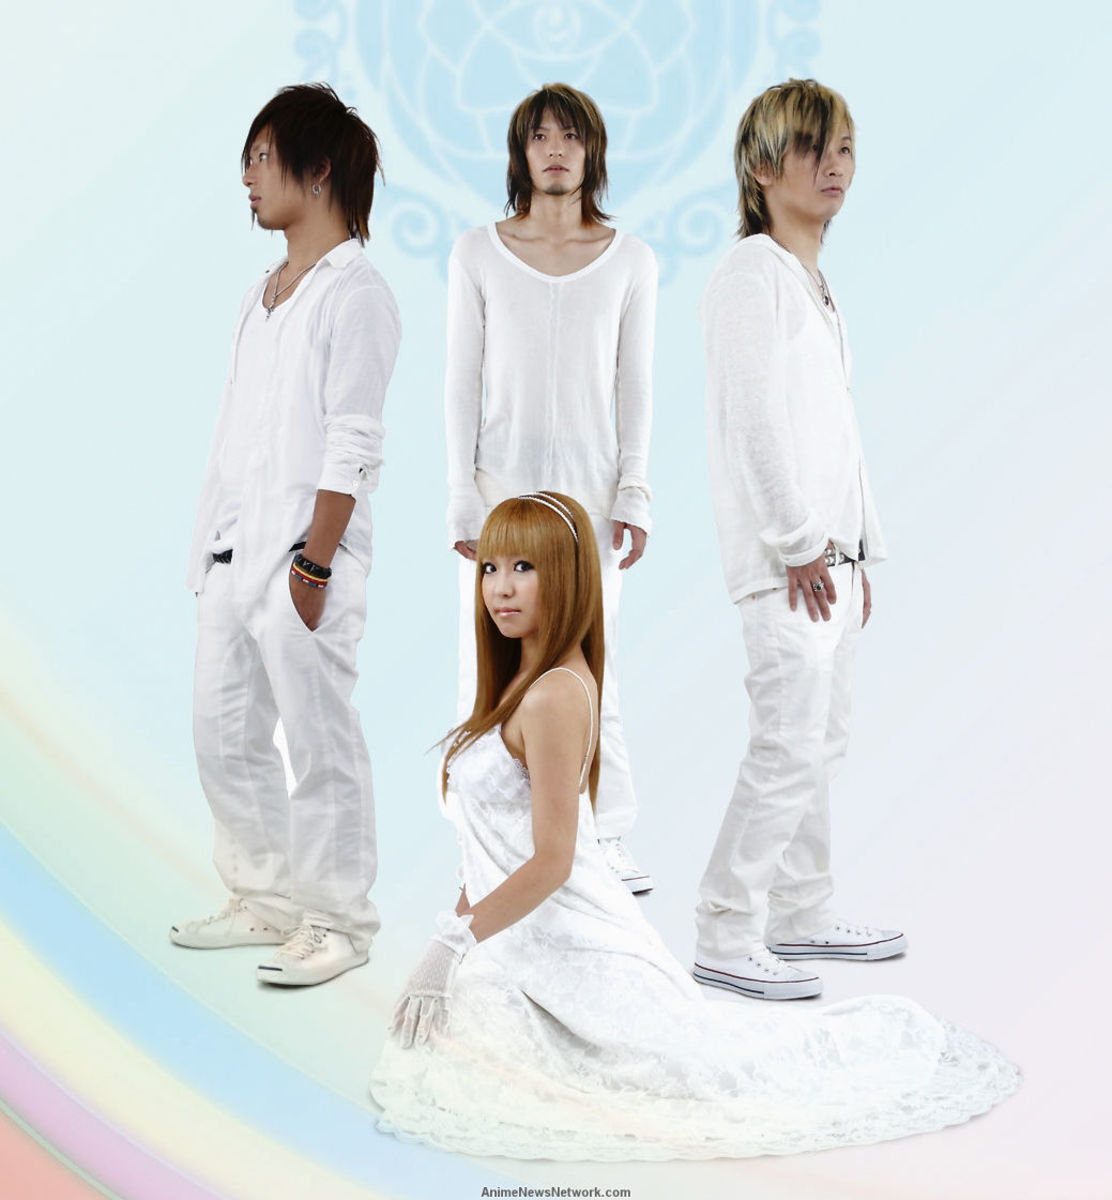 A band photo of Dazzle Vision. Vocalist Maiko Nagasaki is at the center.